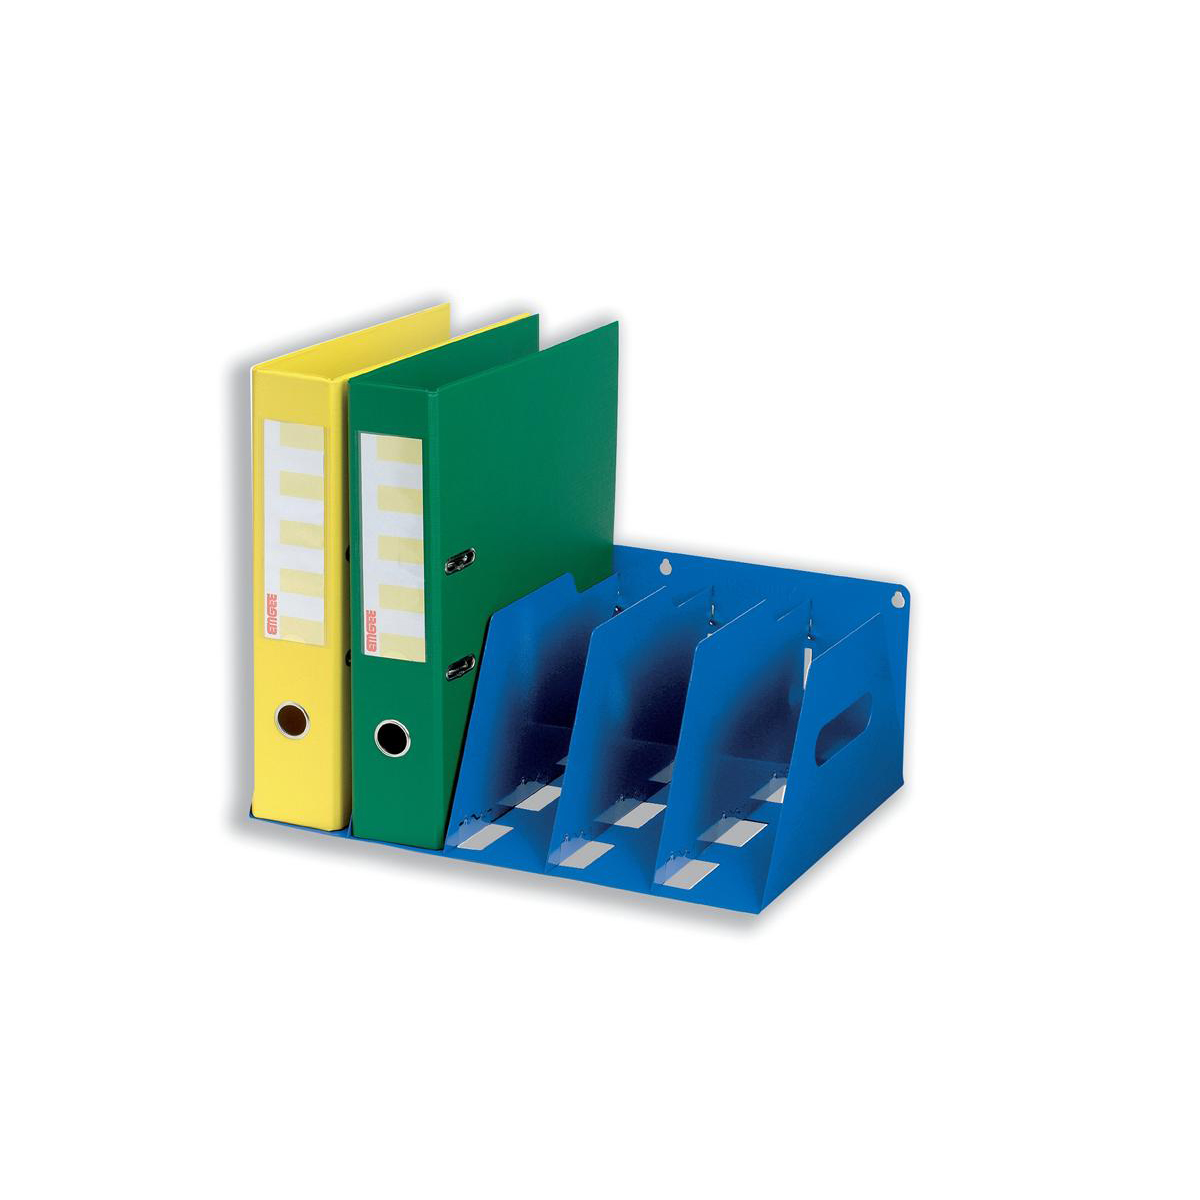 Storage racks or shelves Lever Arch Filing Rack Portable Rigid Metal W410xD292xH160mm Blue